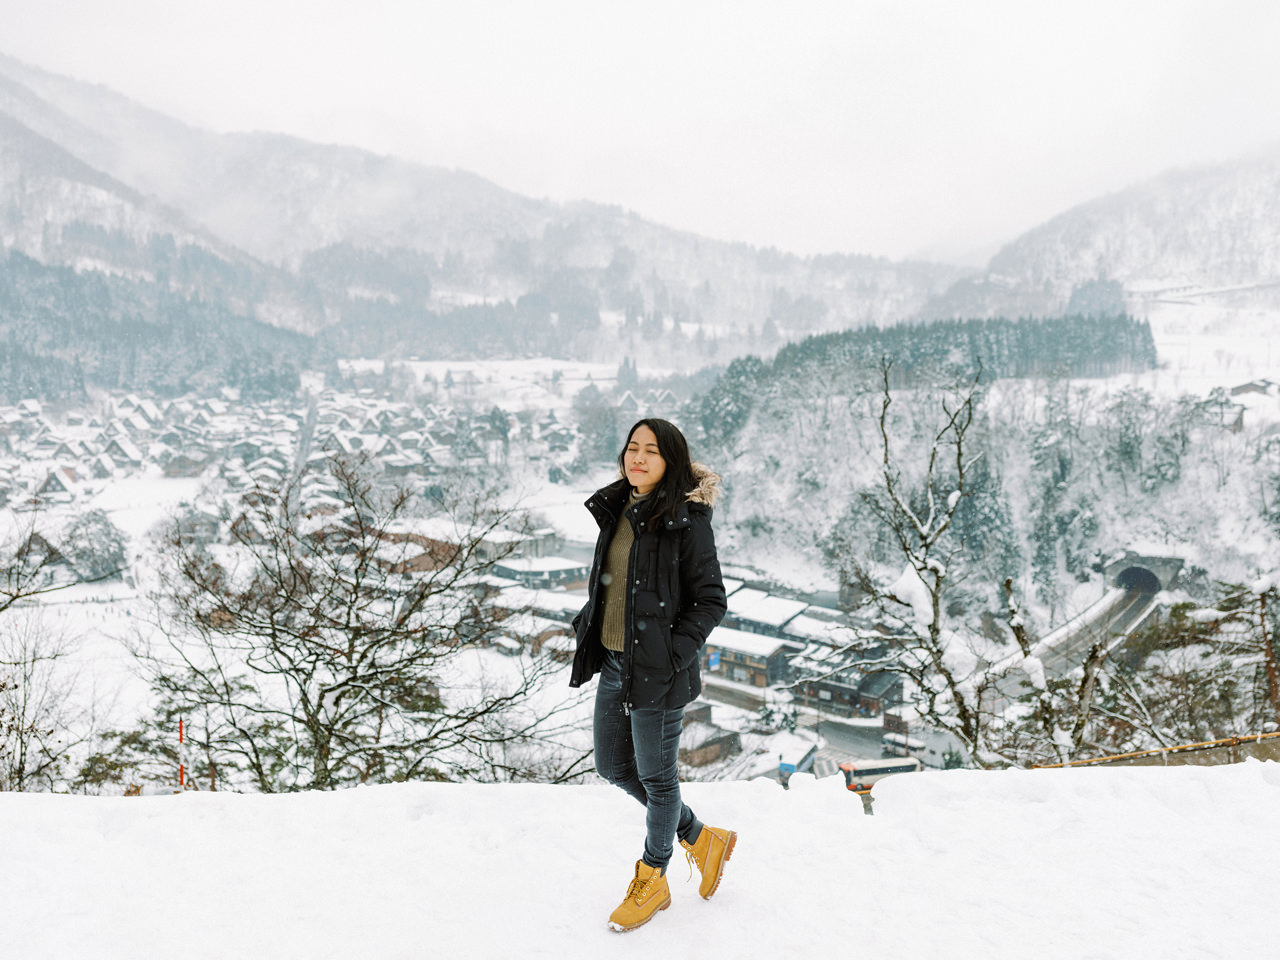 Winter Vacation in Japan 97